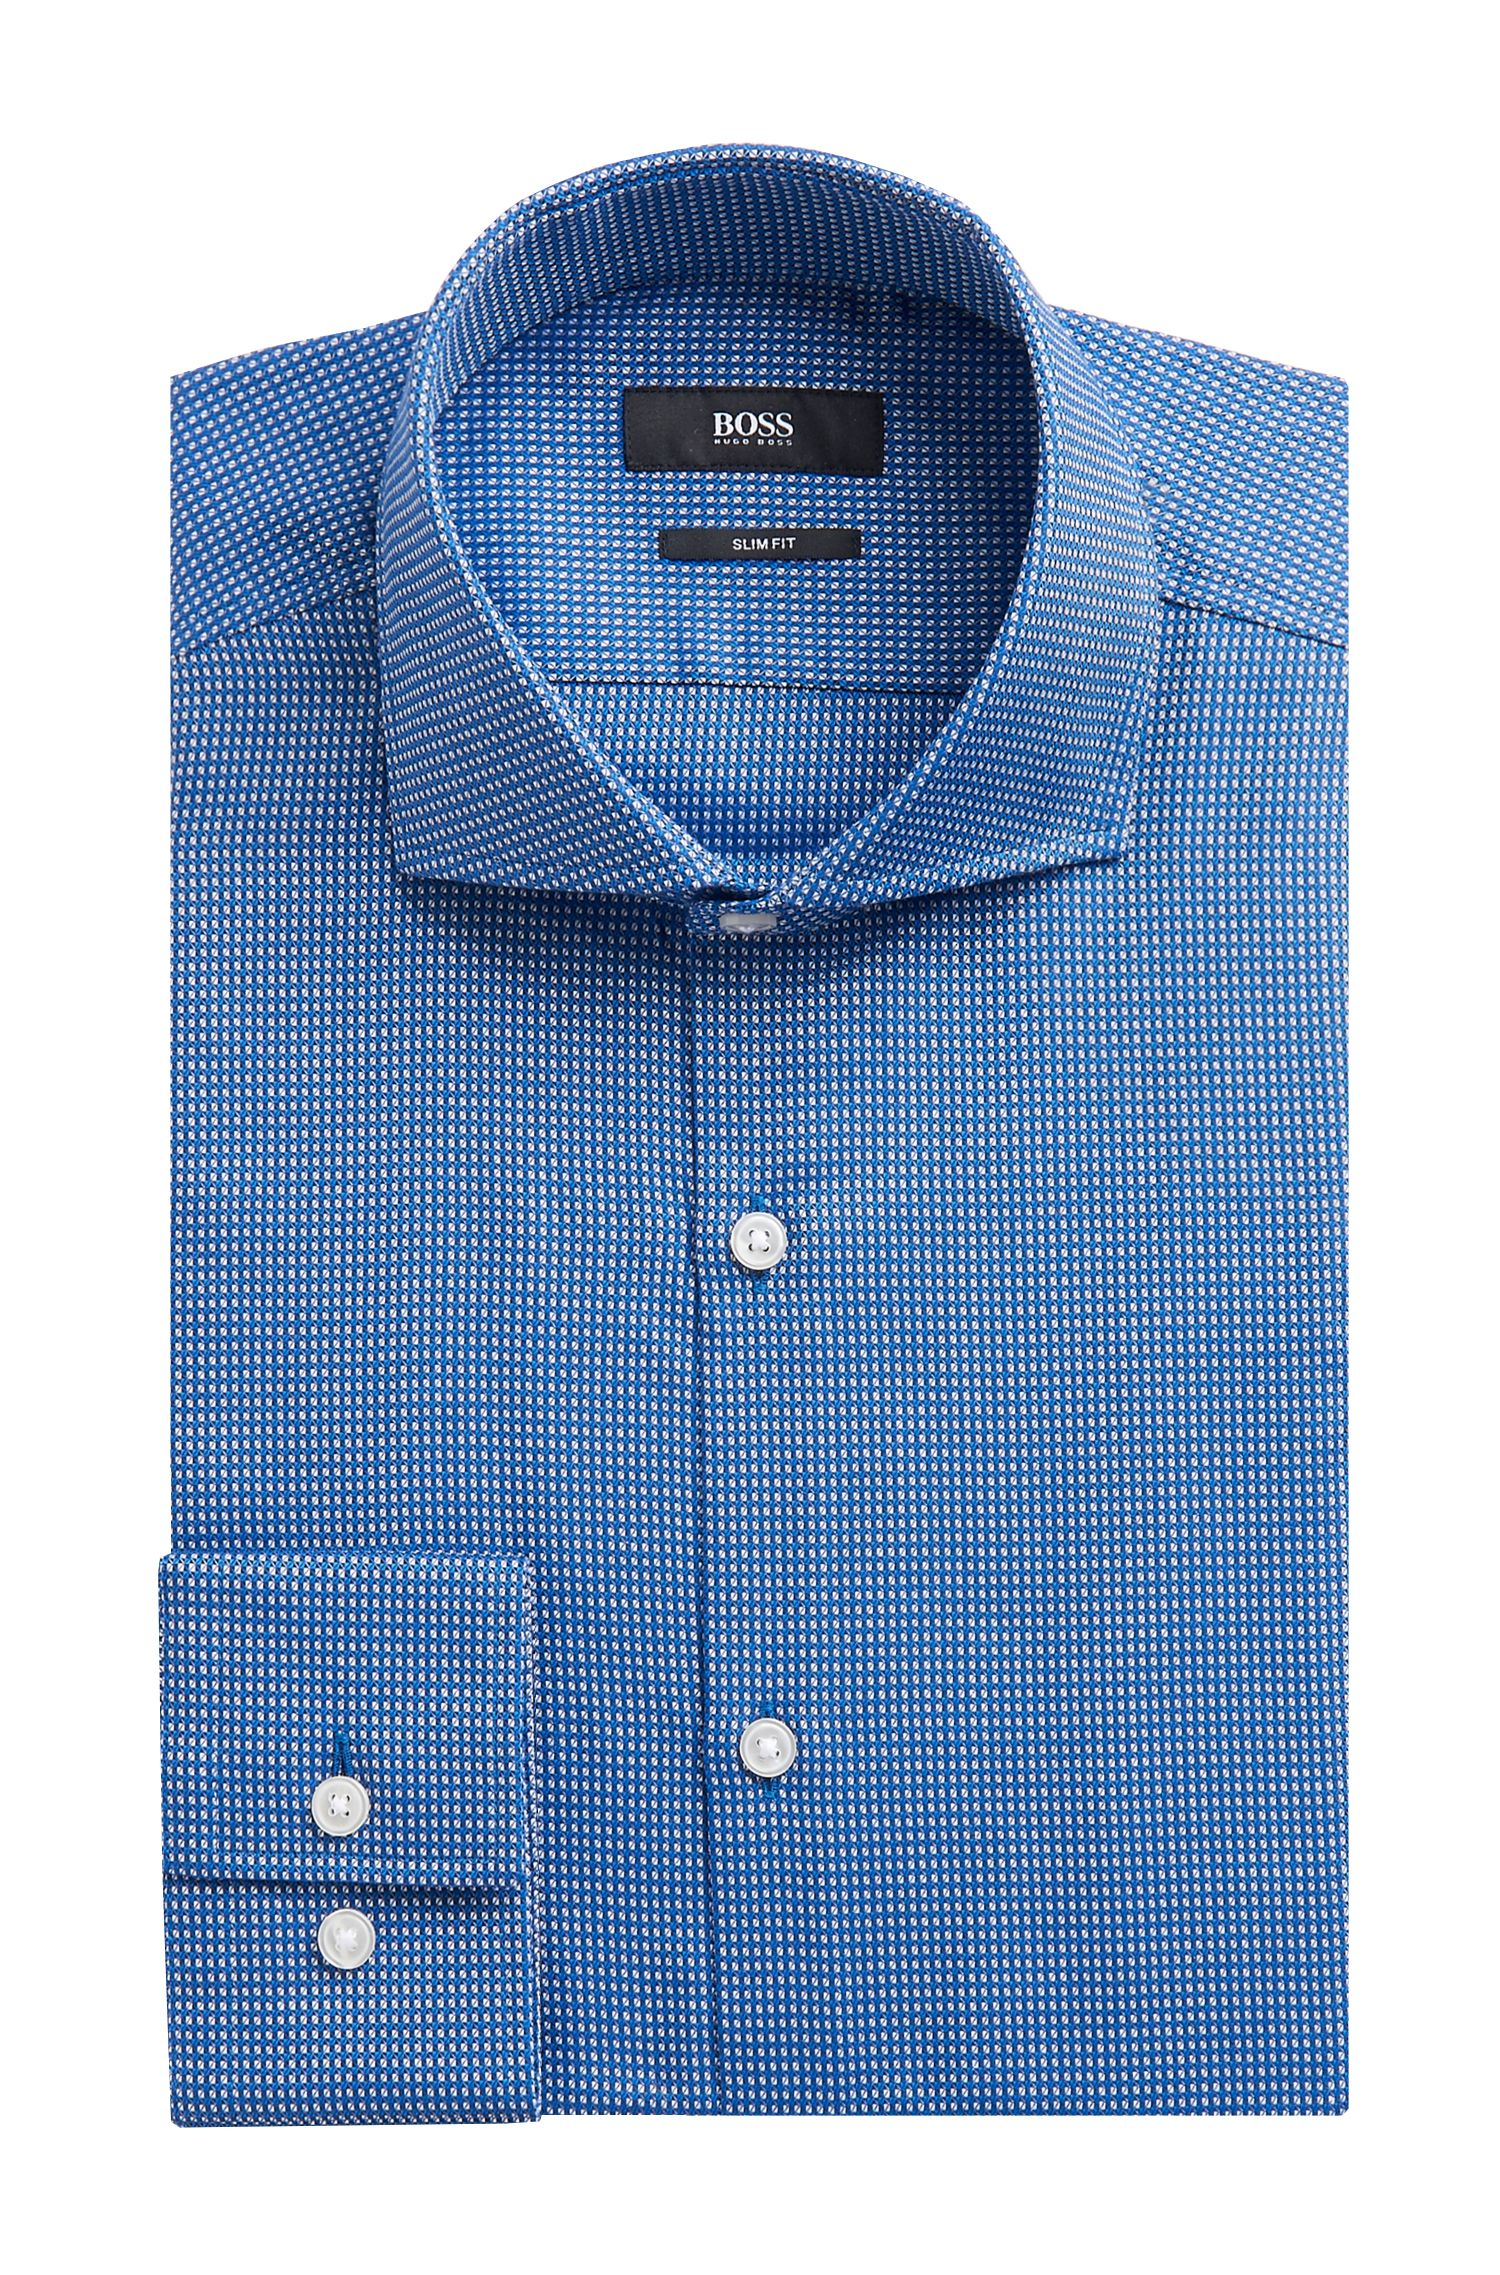 'Jason US' | Slim Fit, Cotton Patterned Dress Shirt